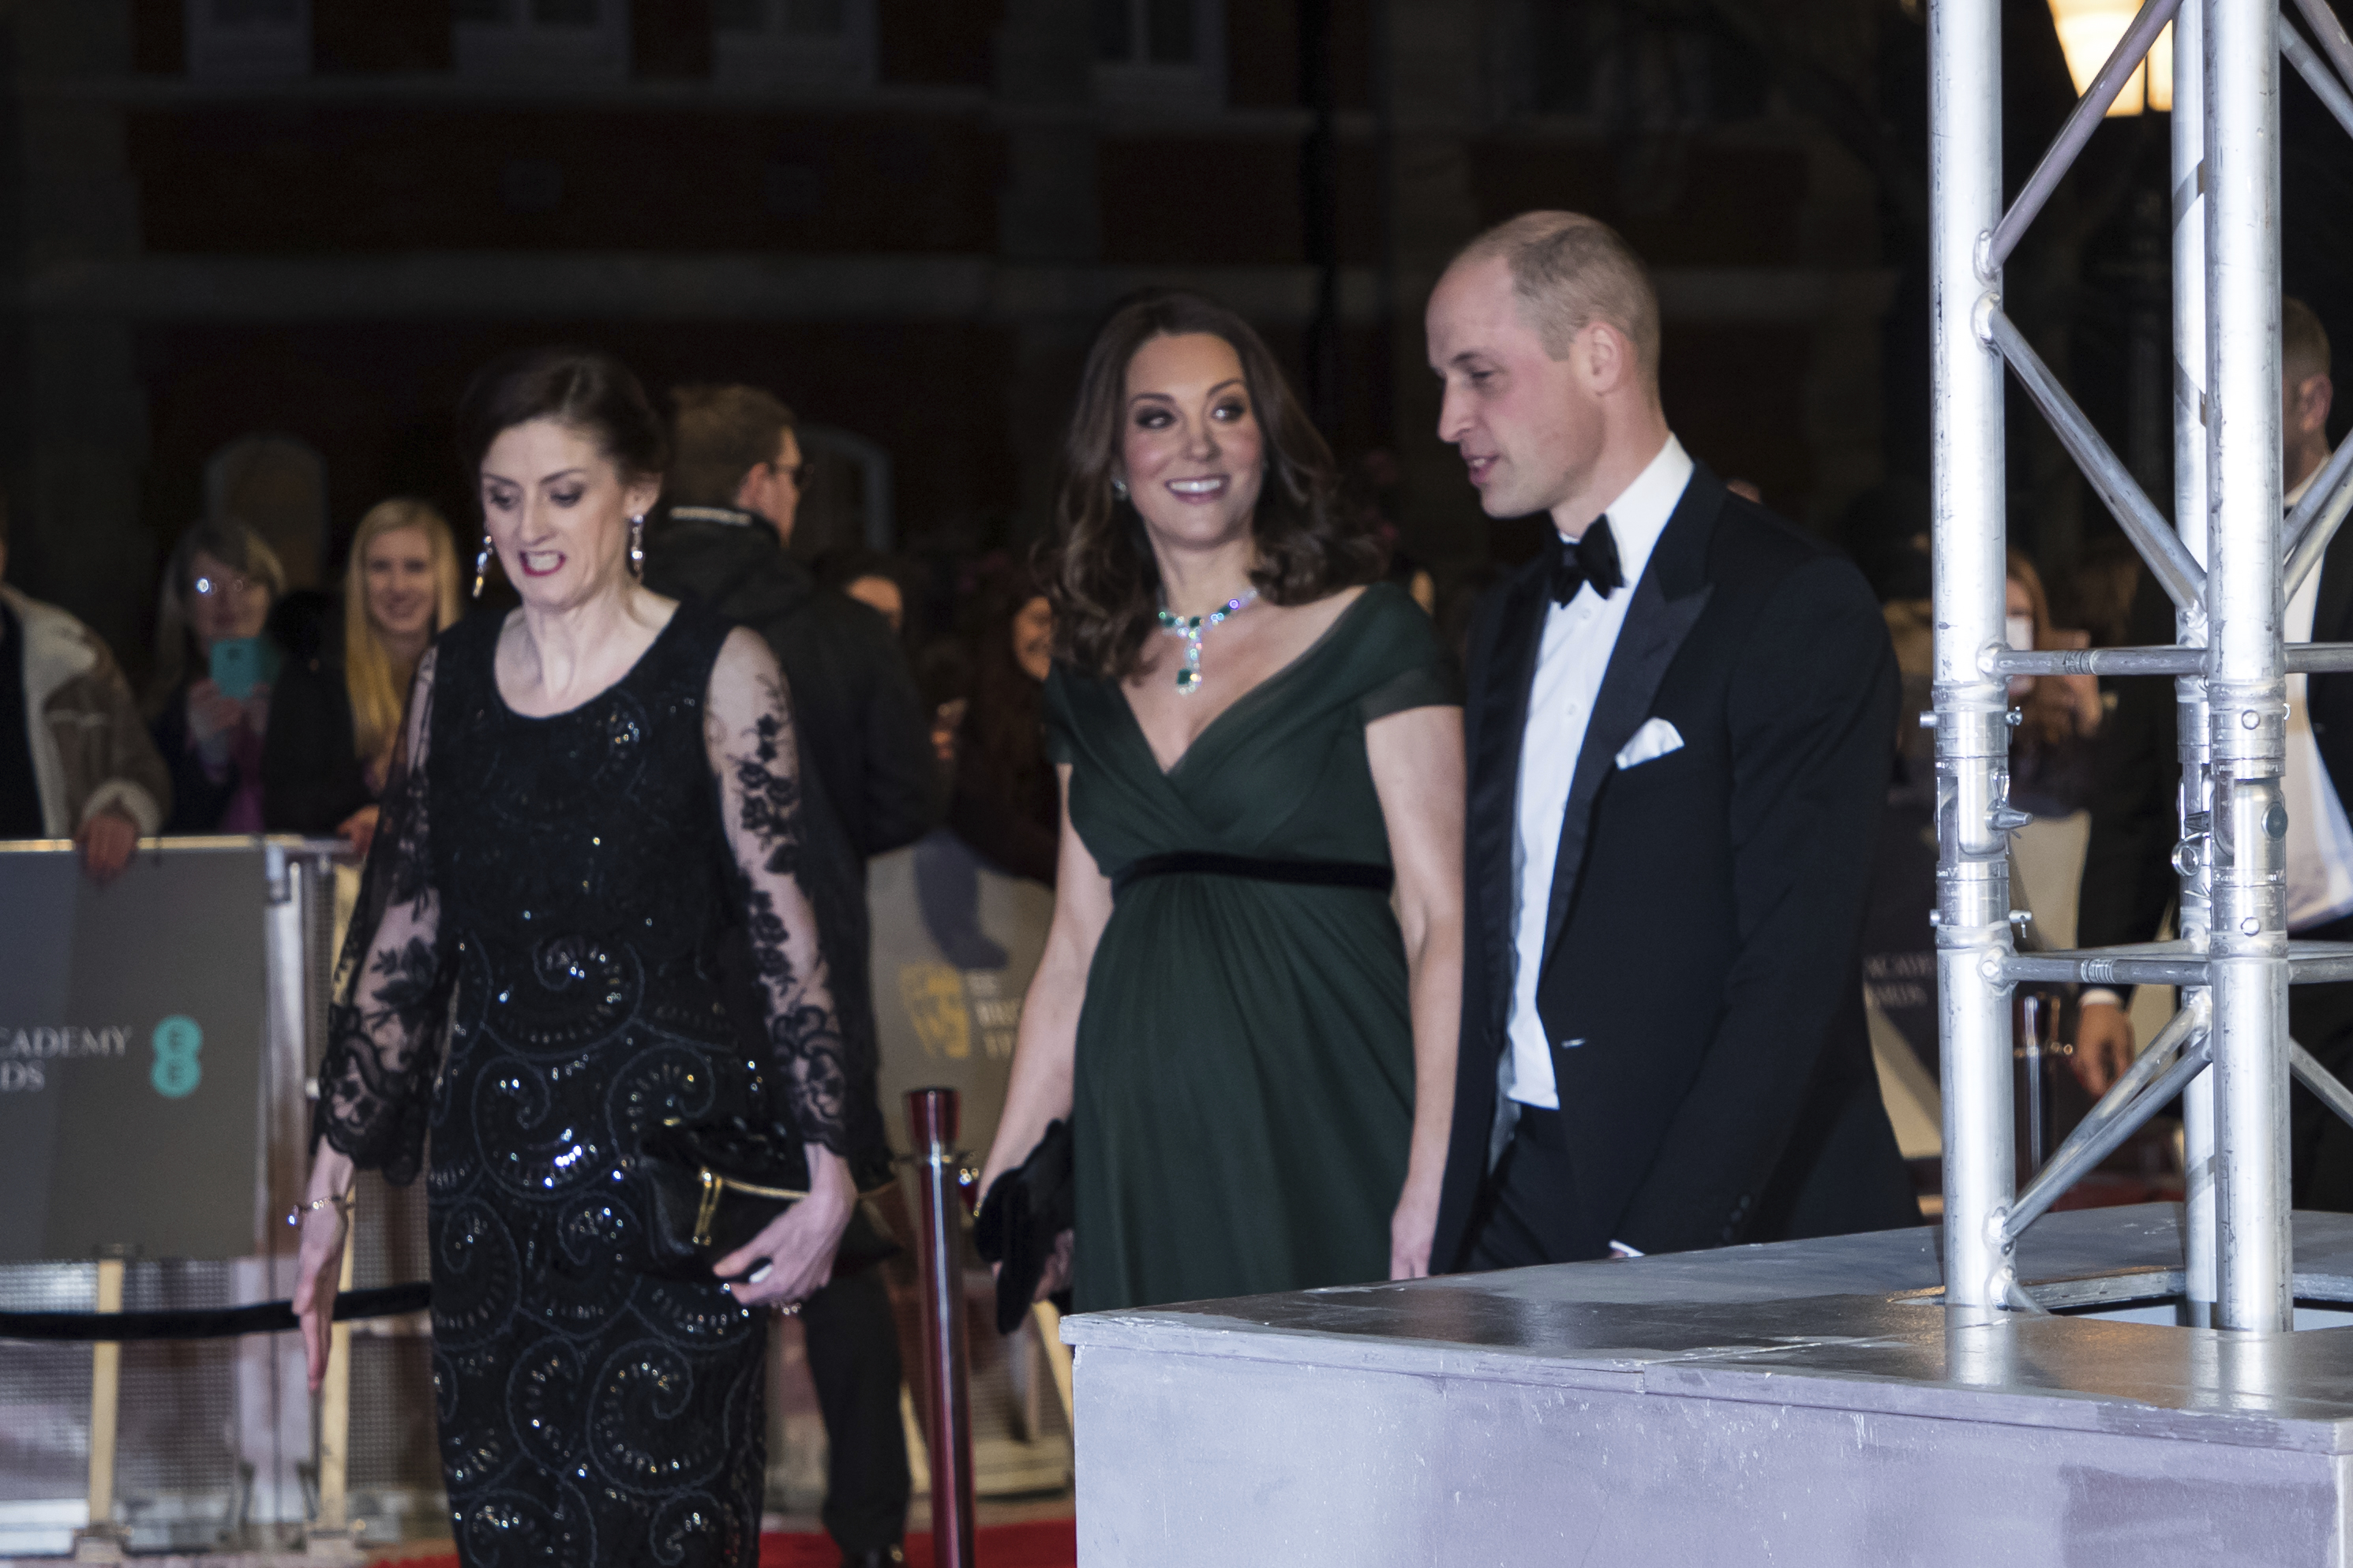 "<div class=""meta image-caption""><div class=""origin-logo origin-image none""><span>none</span></div><span class=""caption-text"">Britain's Kate, the Duchess of Cambridge and William, Duke of Cambridge arrive with Chief Executive of BAFTA Amanda Berry at the BAFTA Awards 2018 in London, Sunday, Feb. 18, 2018. (Vianney Le Caer/Invision/AP)</span></div>"